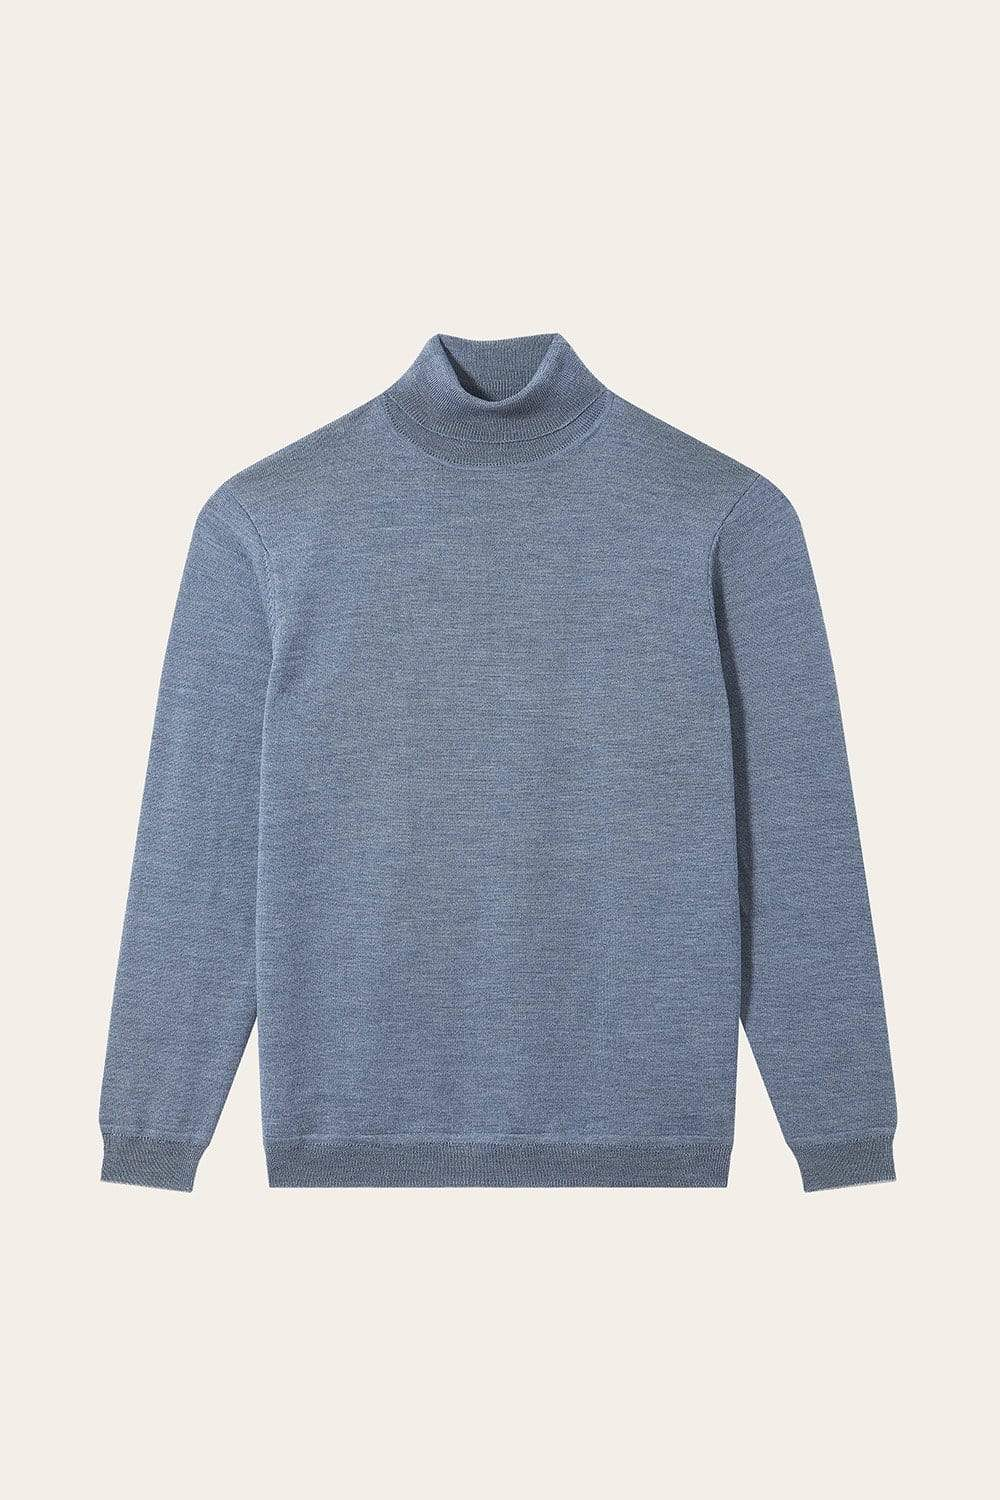 Pull Turtle - Denim - Lafaurie